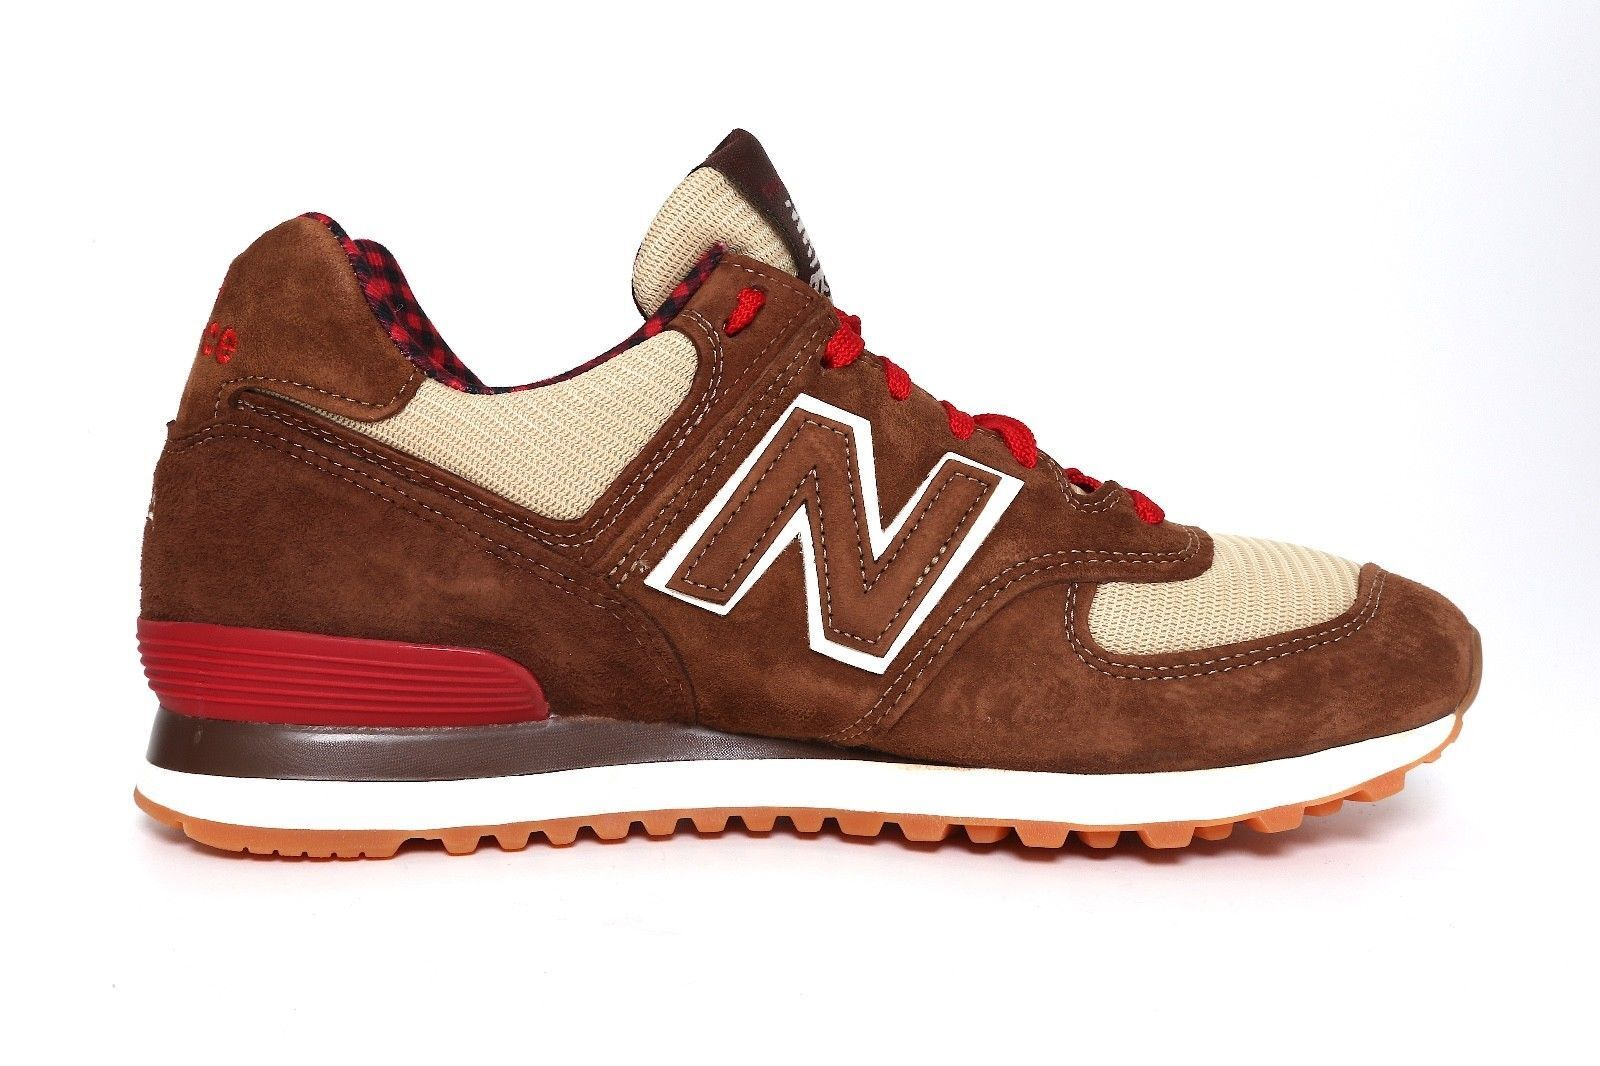 New Balance Classics sz 8 Paul Bunyan Brown Red Red Red Made in USA US574 [M574PB] 574 71cea8